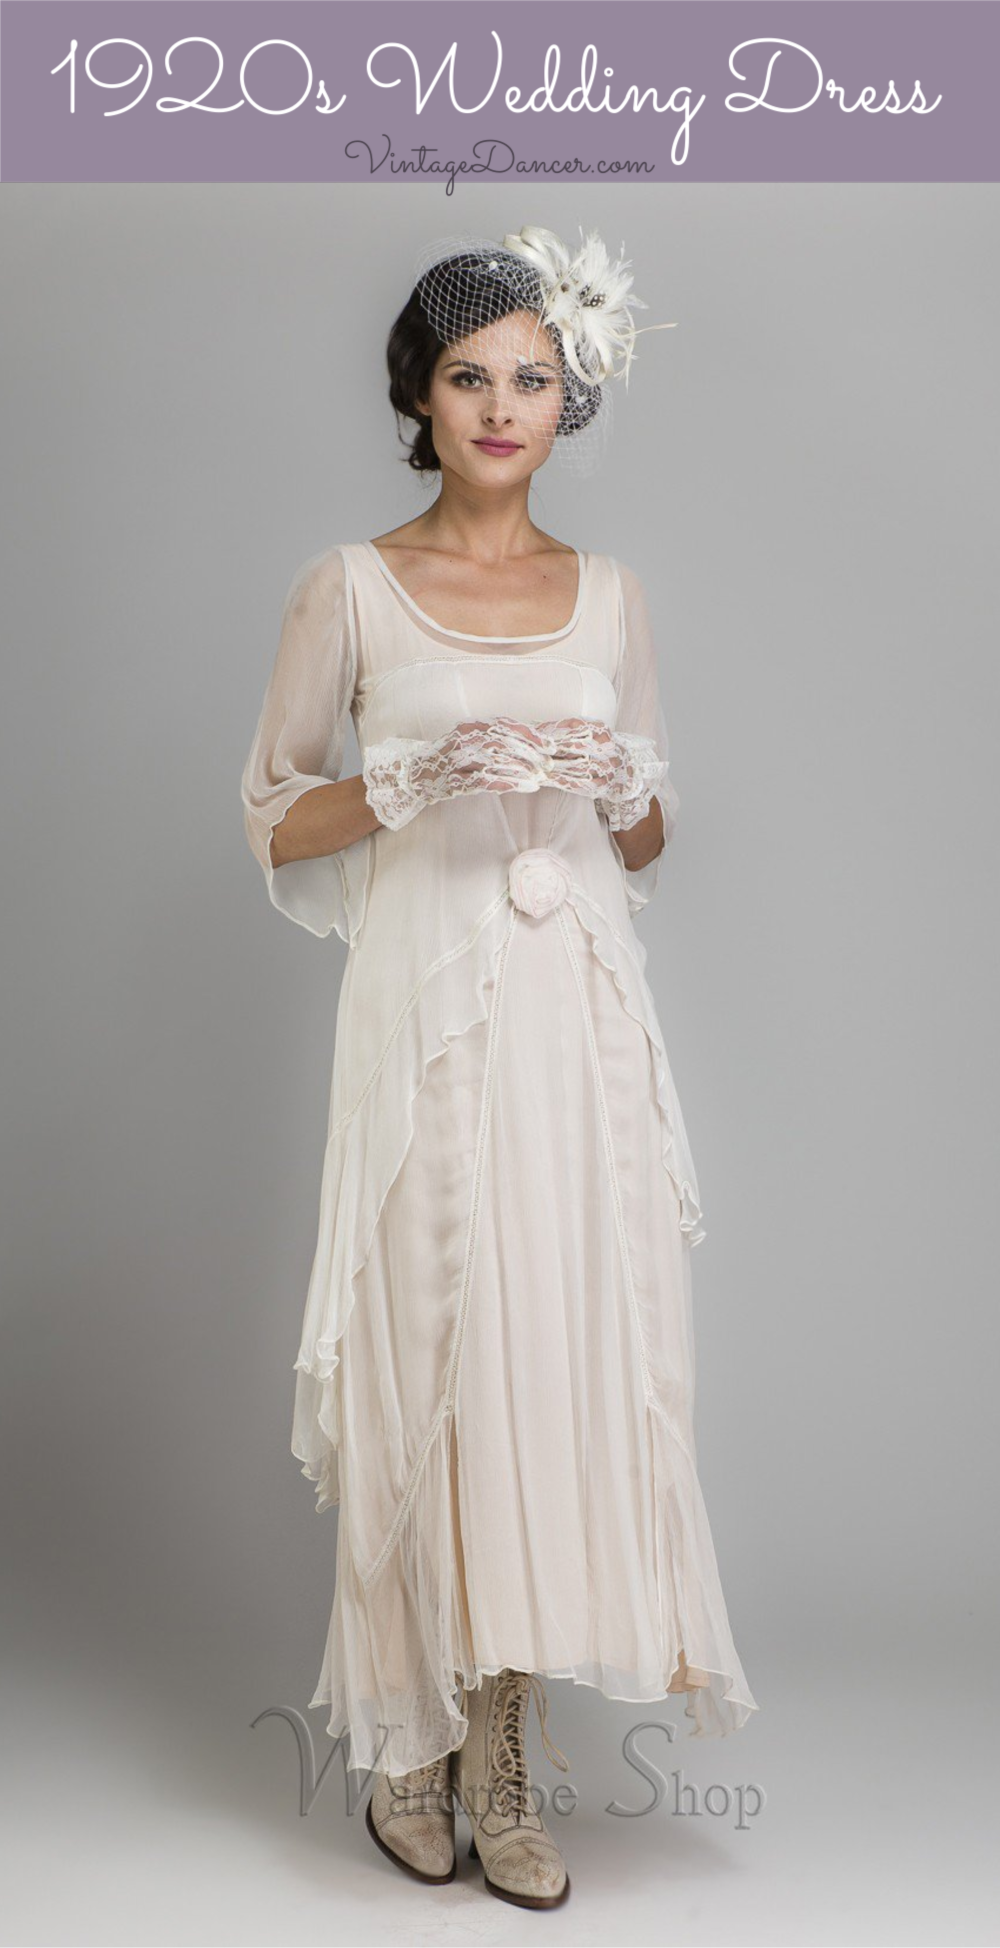 1920s style wedding dress also in plus sizes